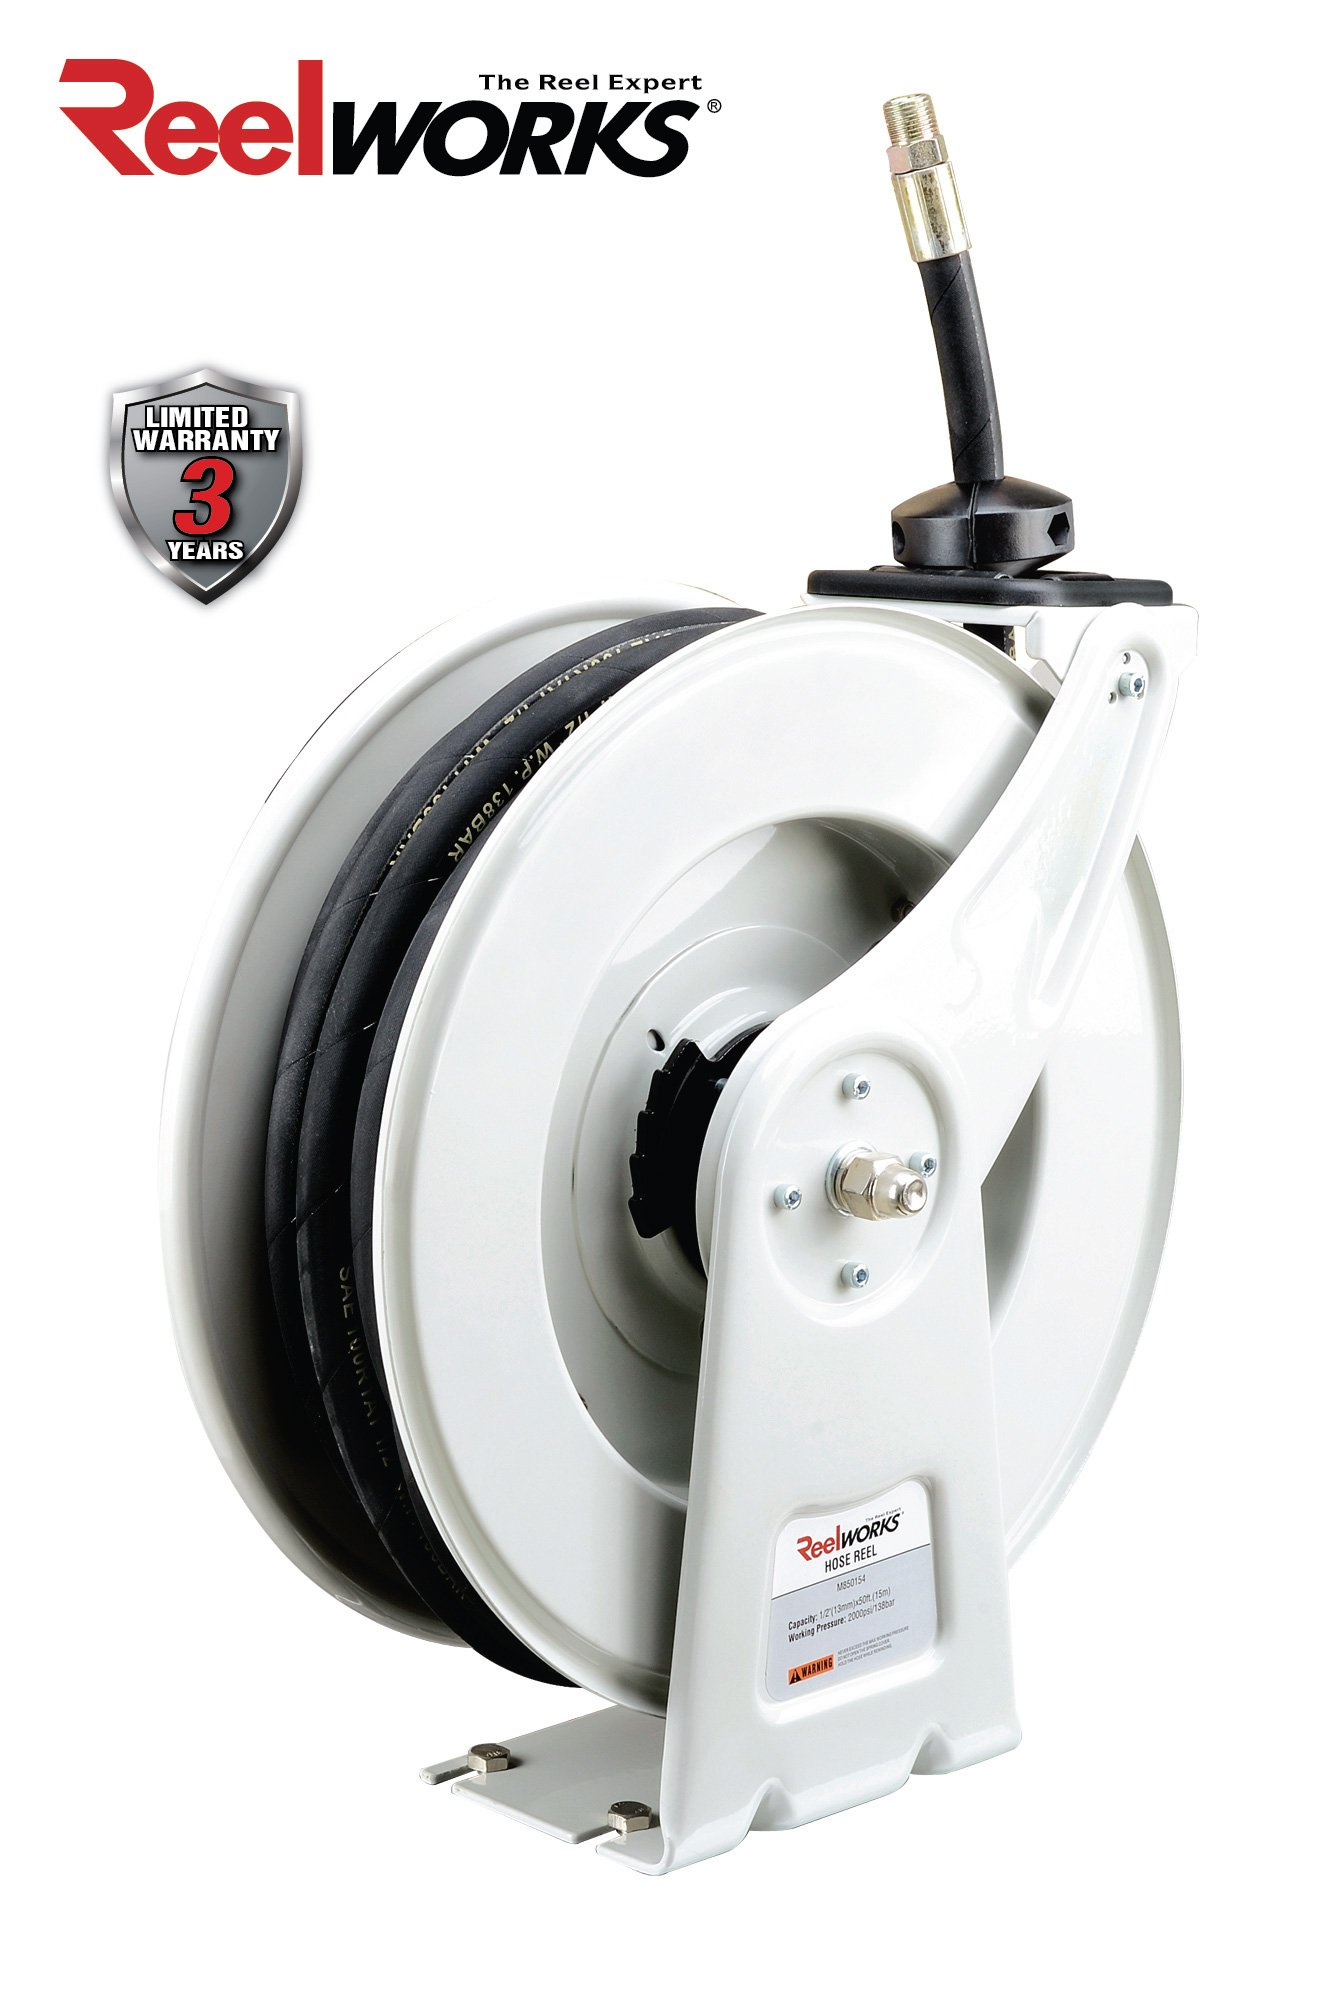 REELWORKS Heavy Duty Spring Driven Hose Reel (1/2'' x 50 Ft. OIL HOSE REEL) by Reelworks (Image #9)